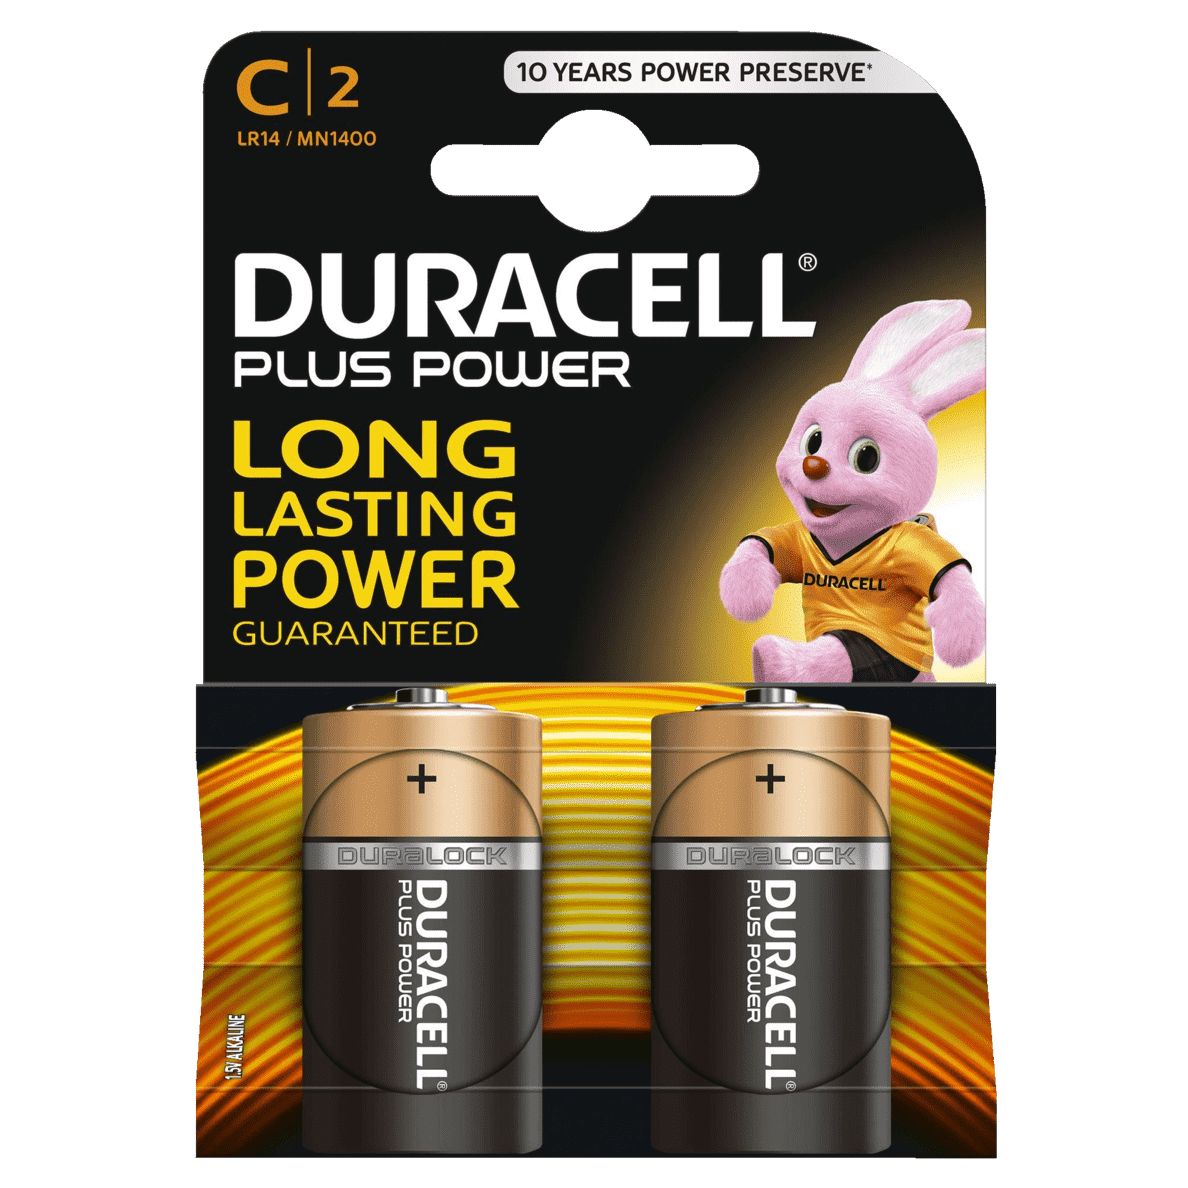 DURACELL Plus Power C Batterie, 2 Stück